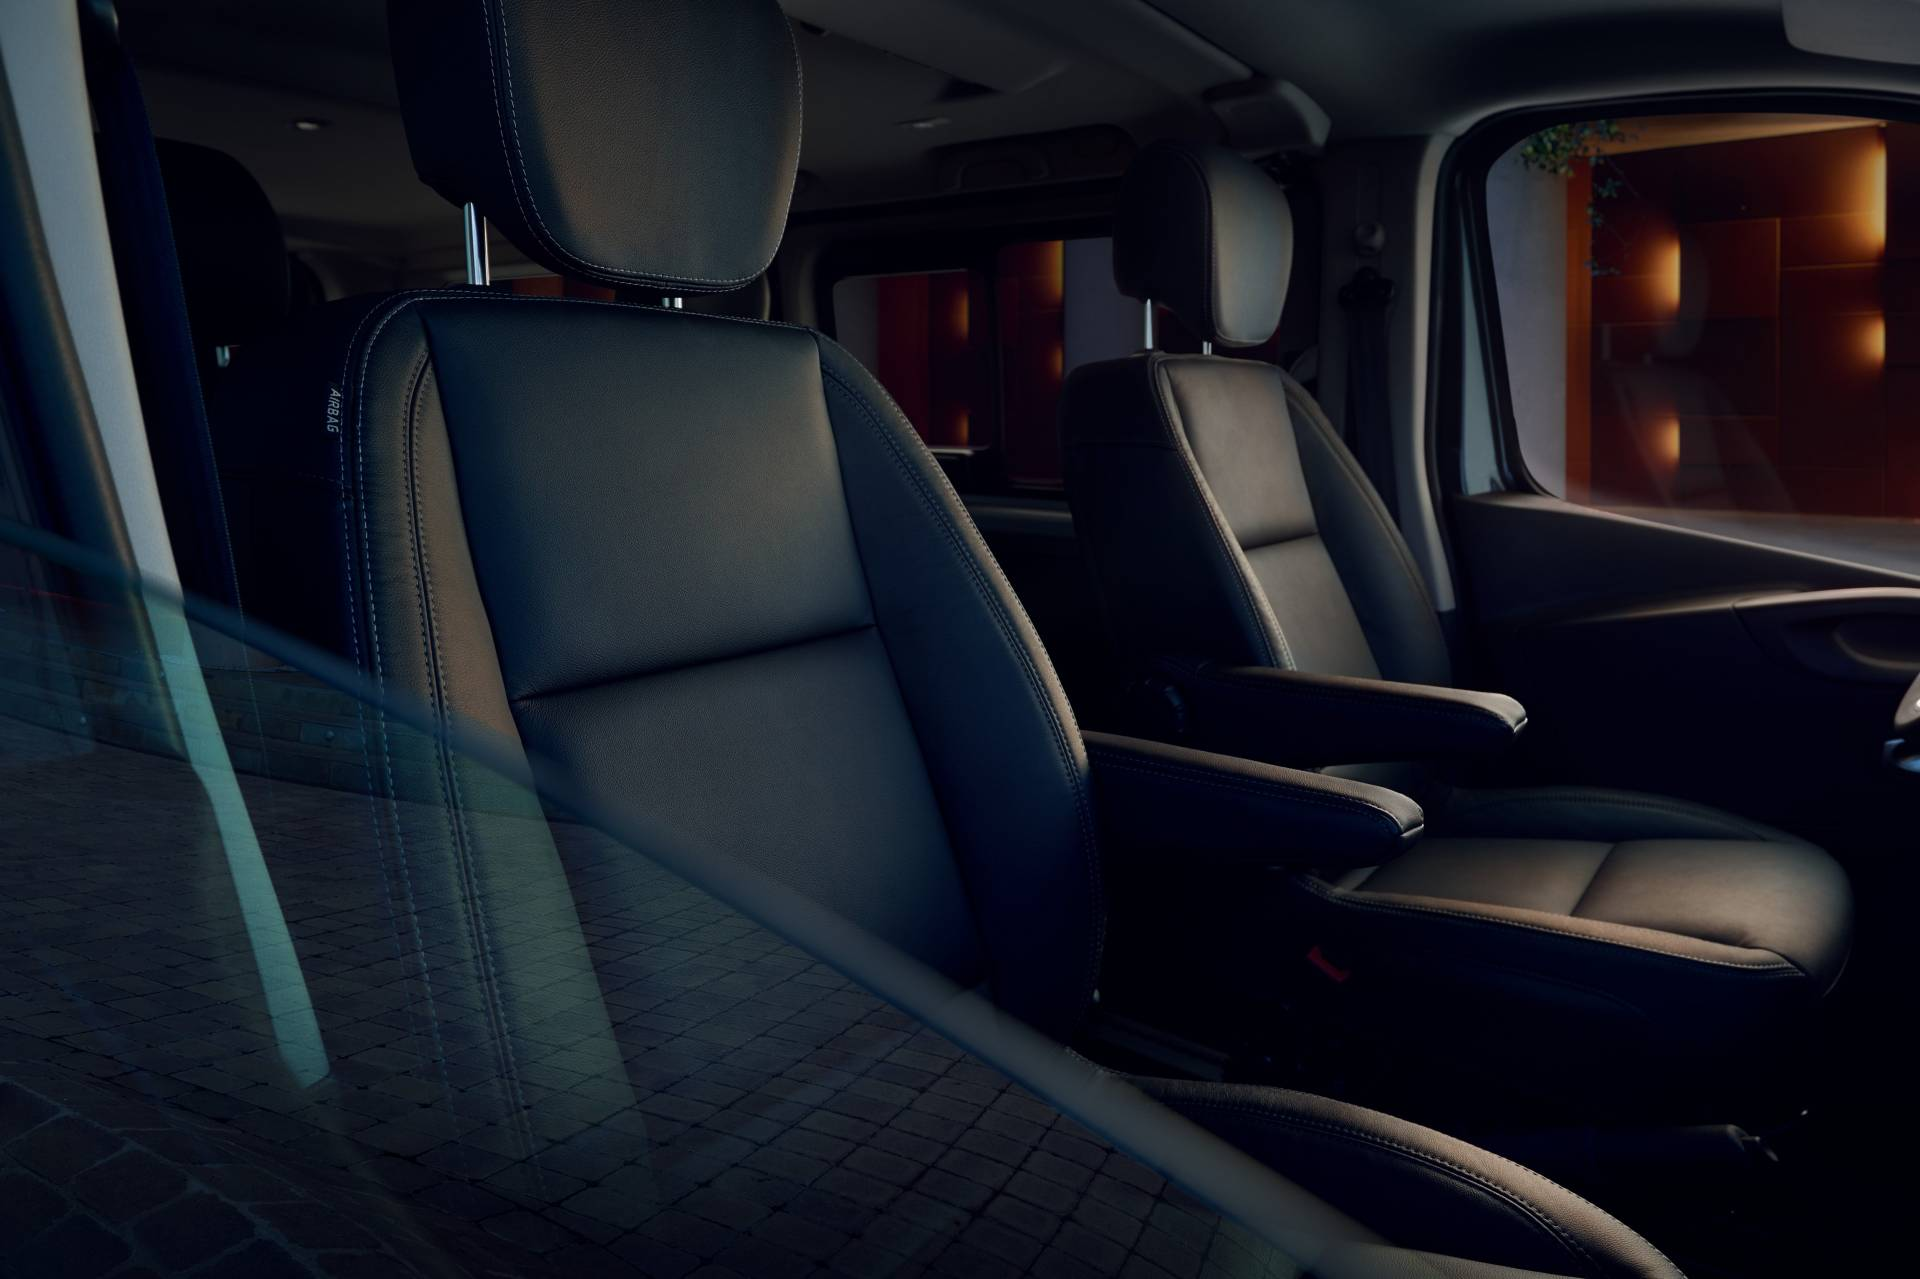 99fa147b-2019my-renault-trafic-spaceclass-facelift-8